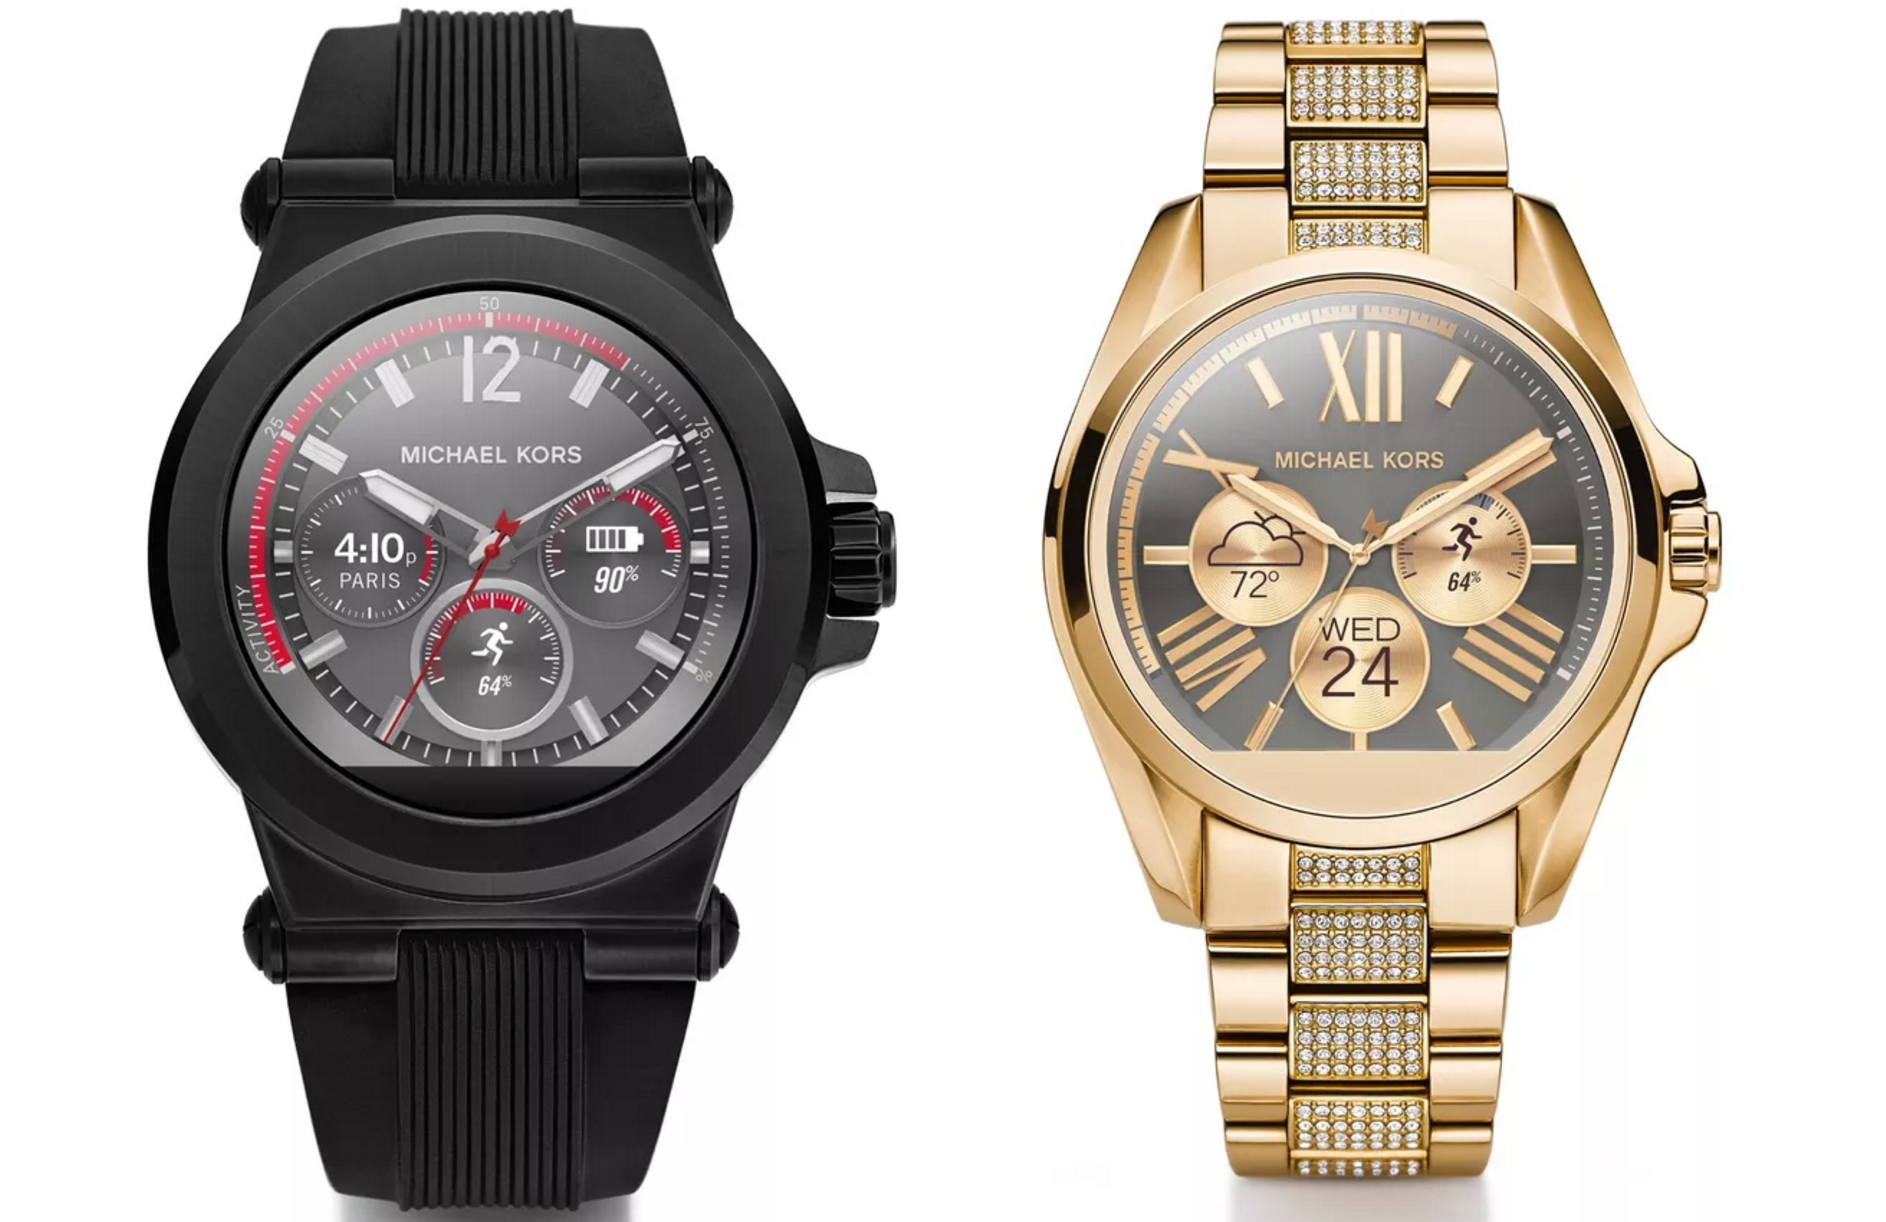 michael kors unveils new android wear line casio 39 s 500 smartwatch gets march 25th release date. Black Bedroom Furniture Sets. Home Design Ideas